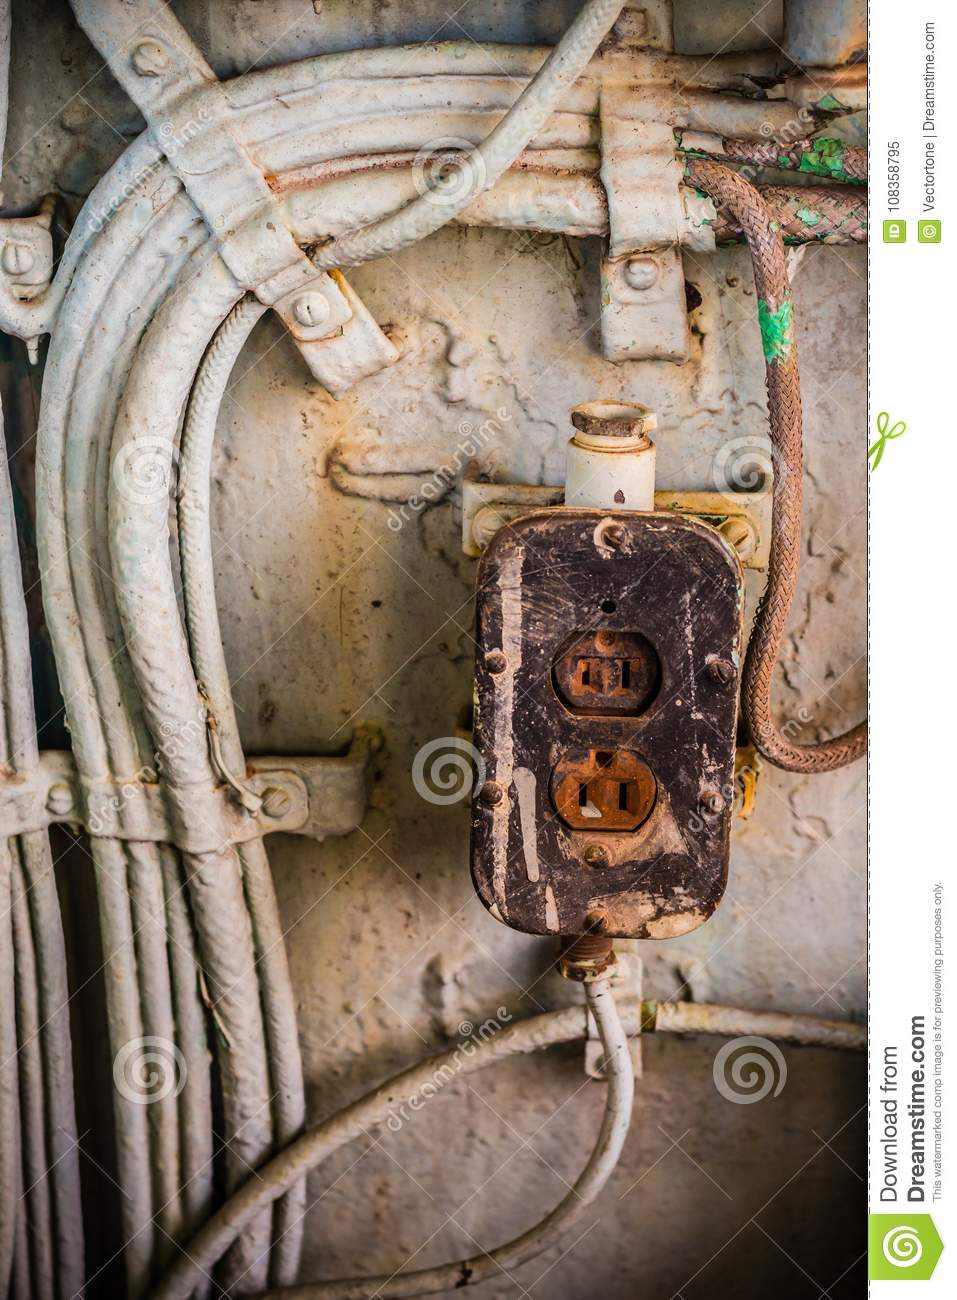 hight resolution of very old power socket with metal tube and electric wire in the abandoned industrial place